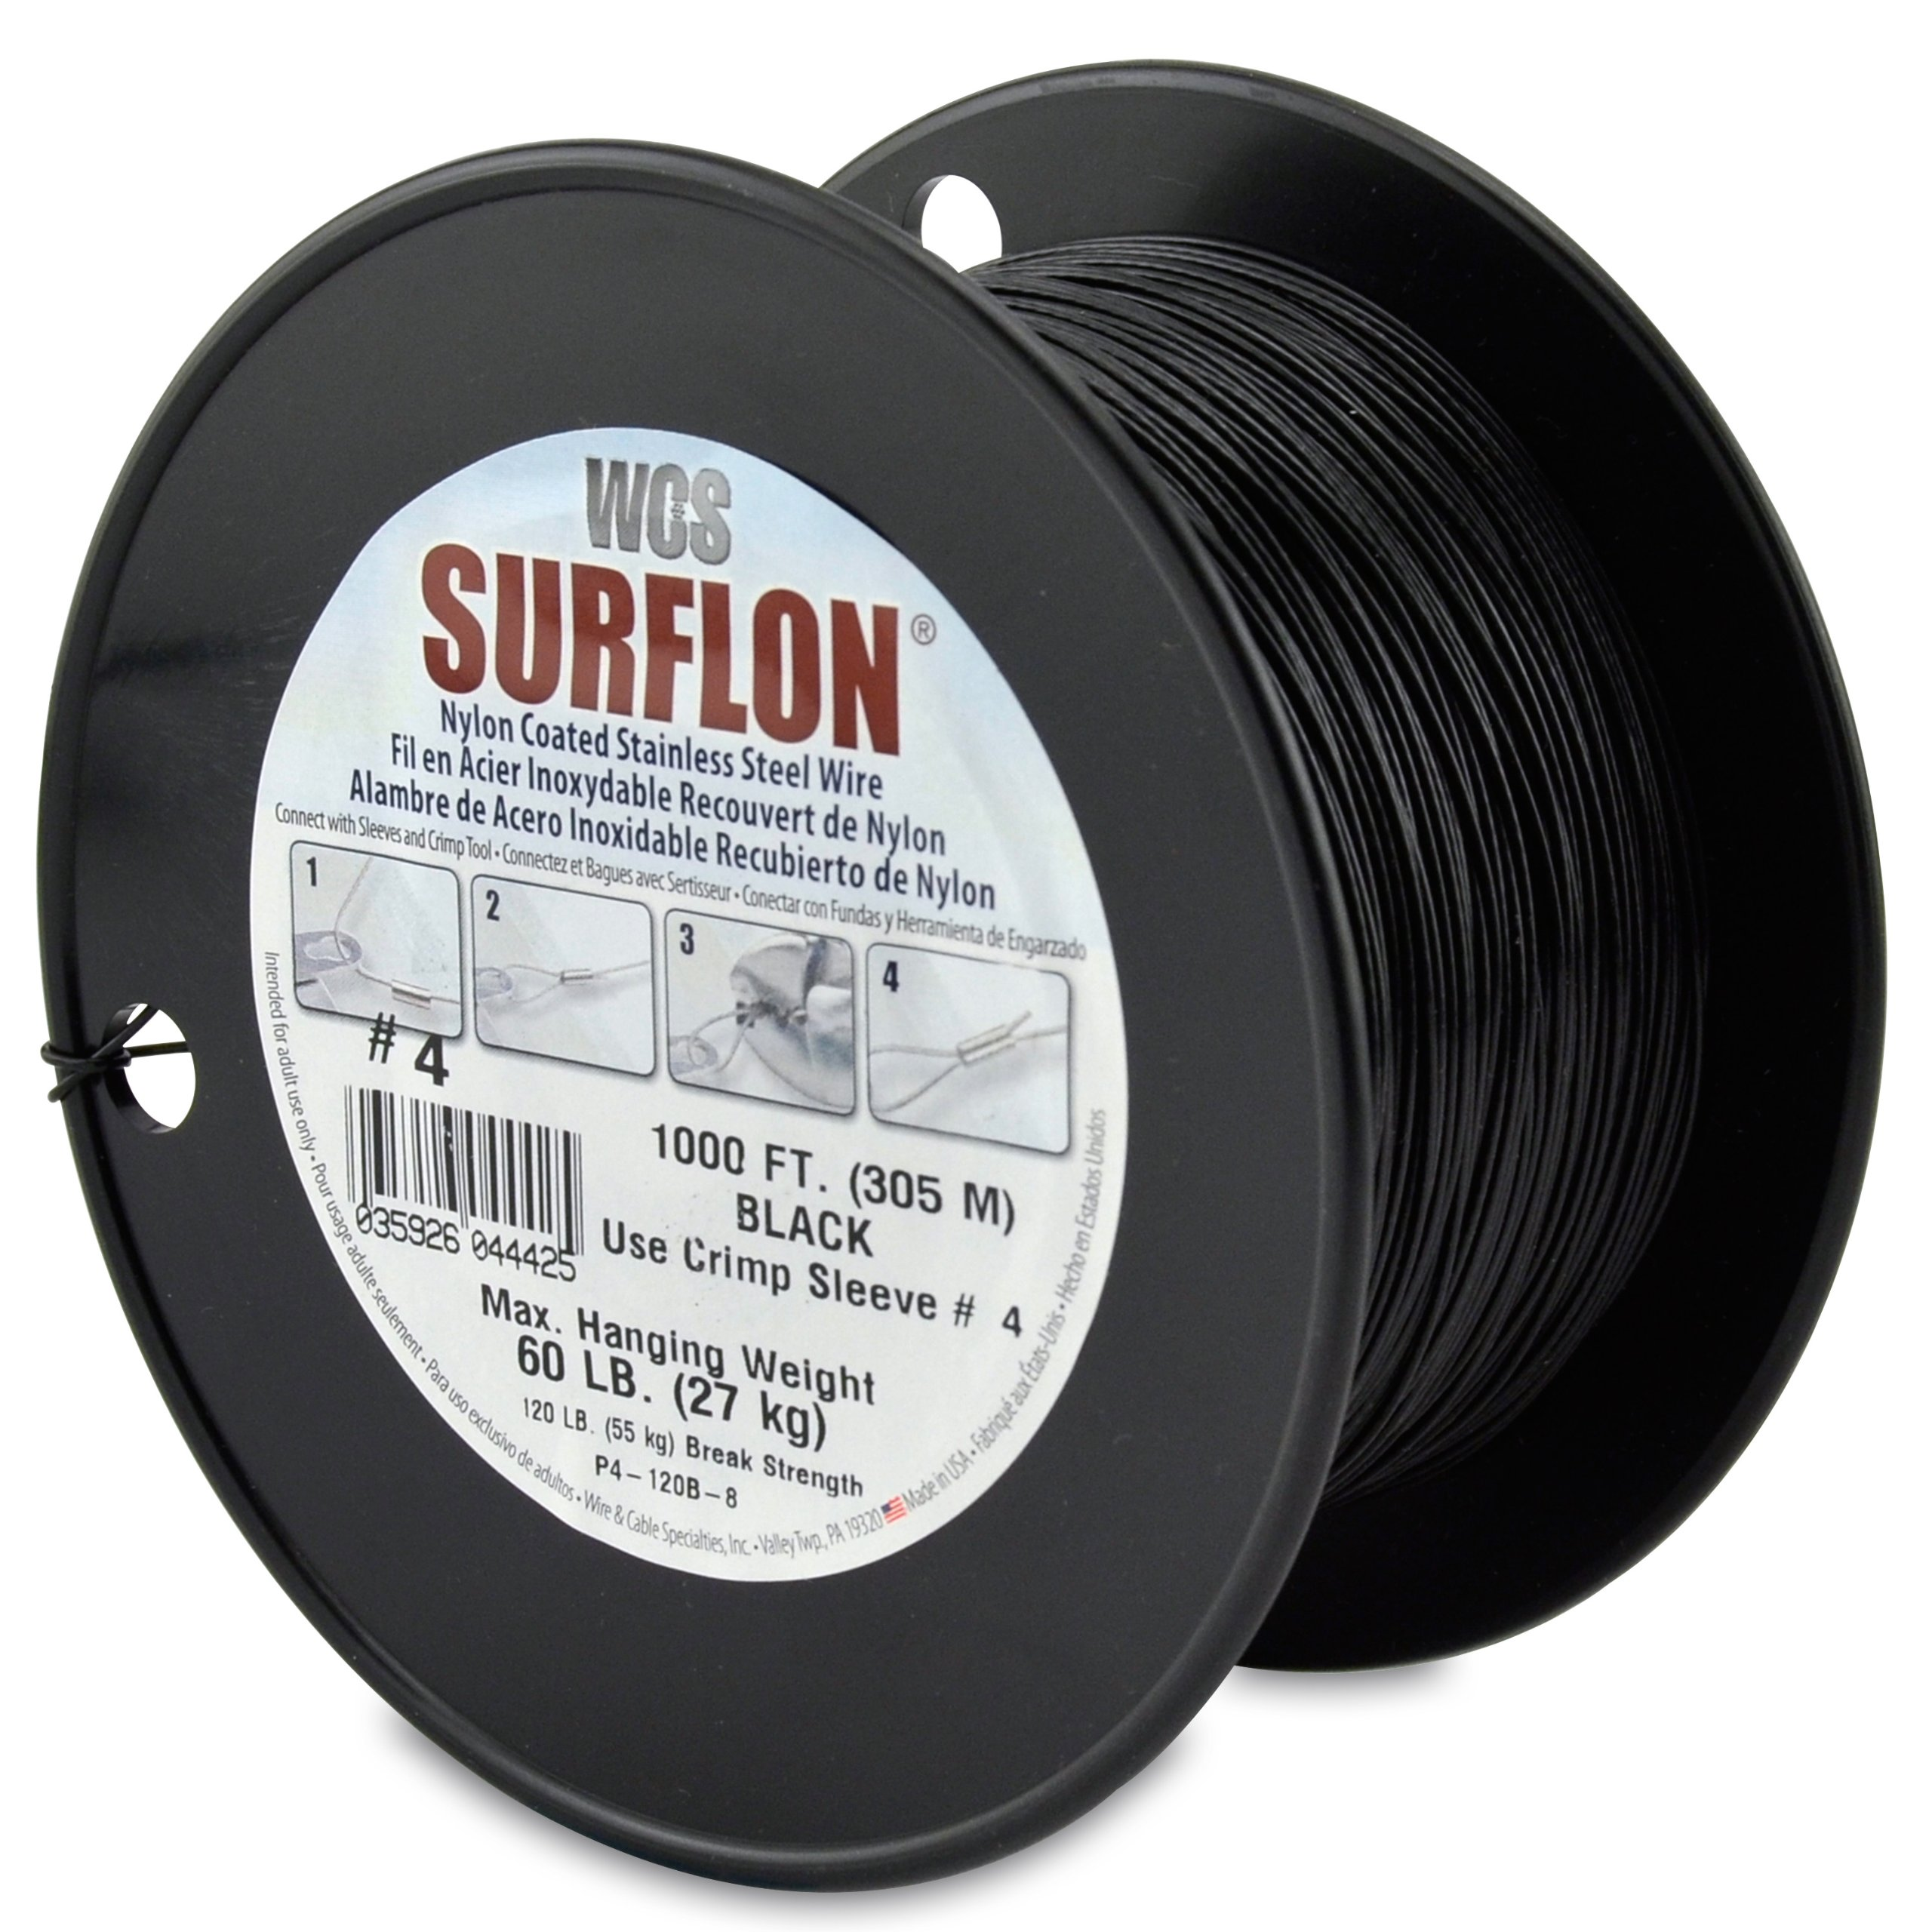 Surflon Size 4-60-Pound Break 1000-Feet Crimping Picture Wire Nylon Coated Stainless Steel, Black